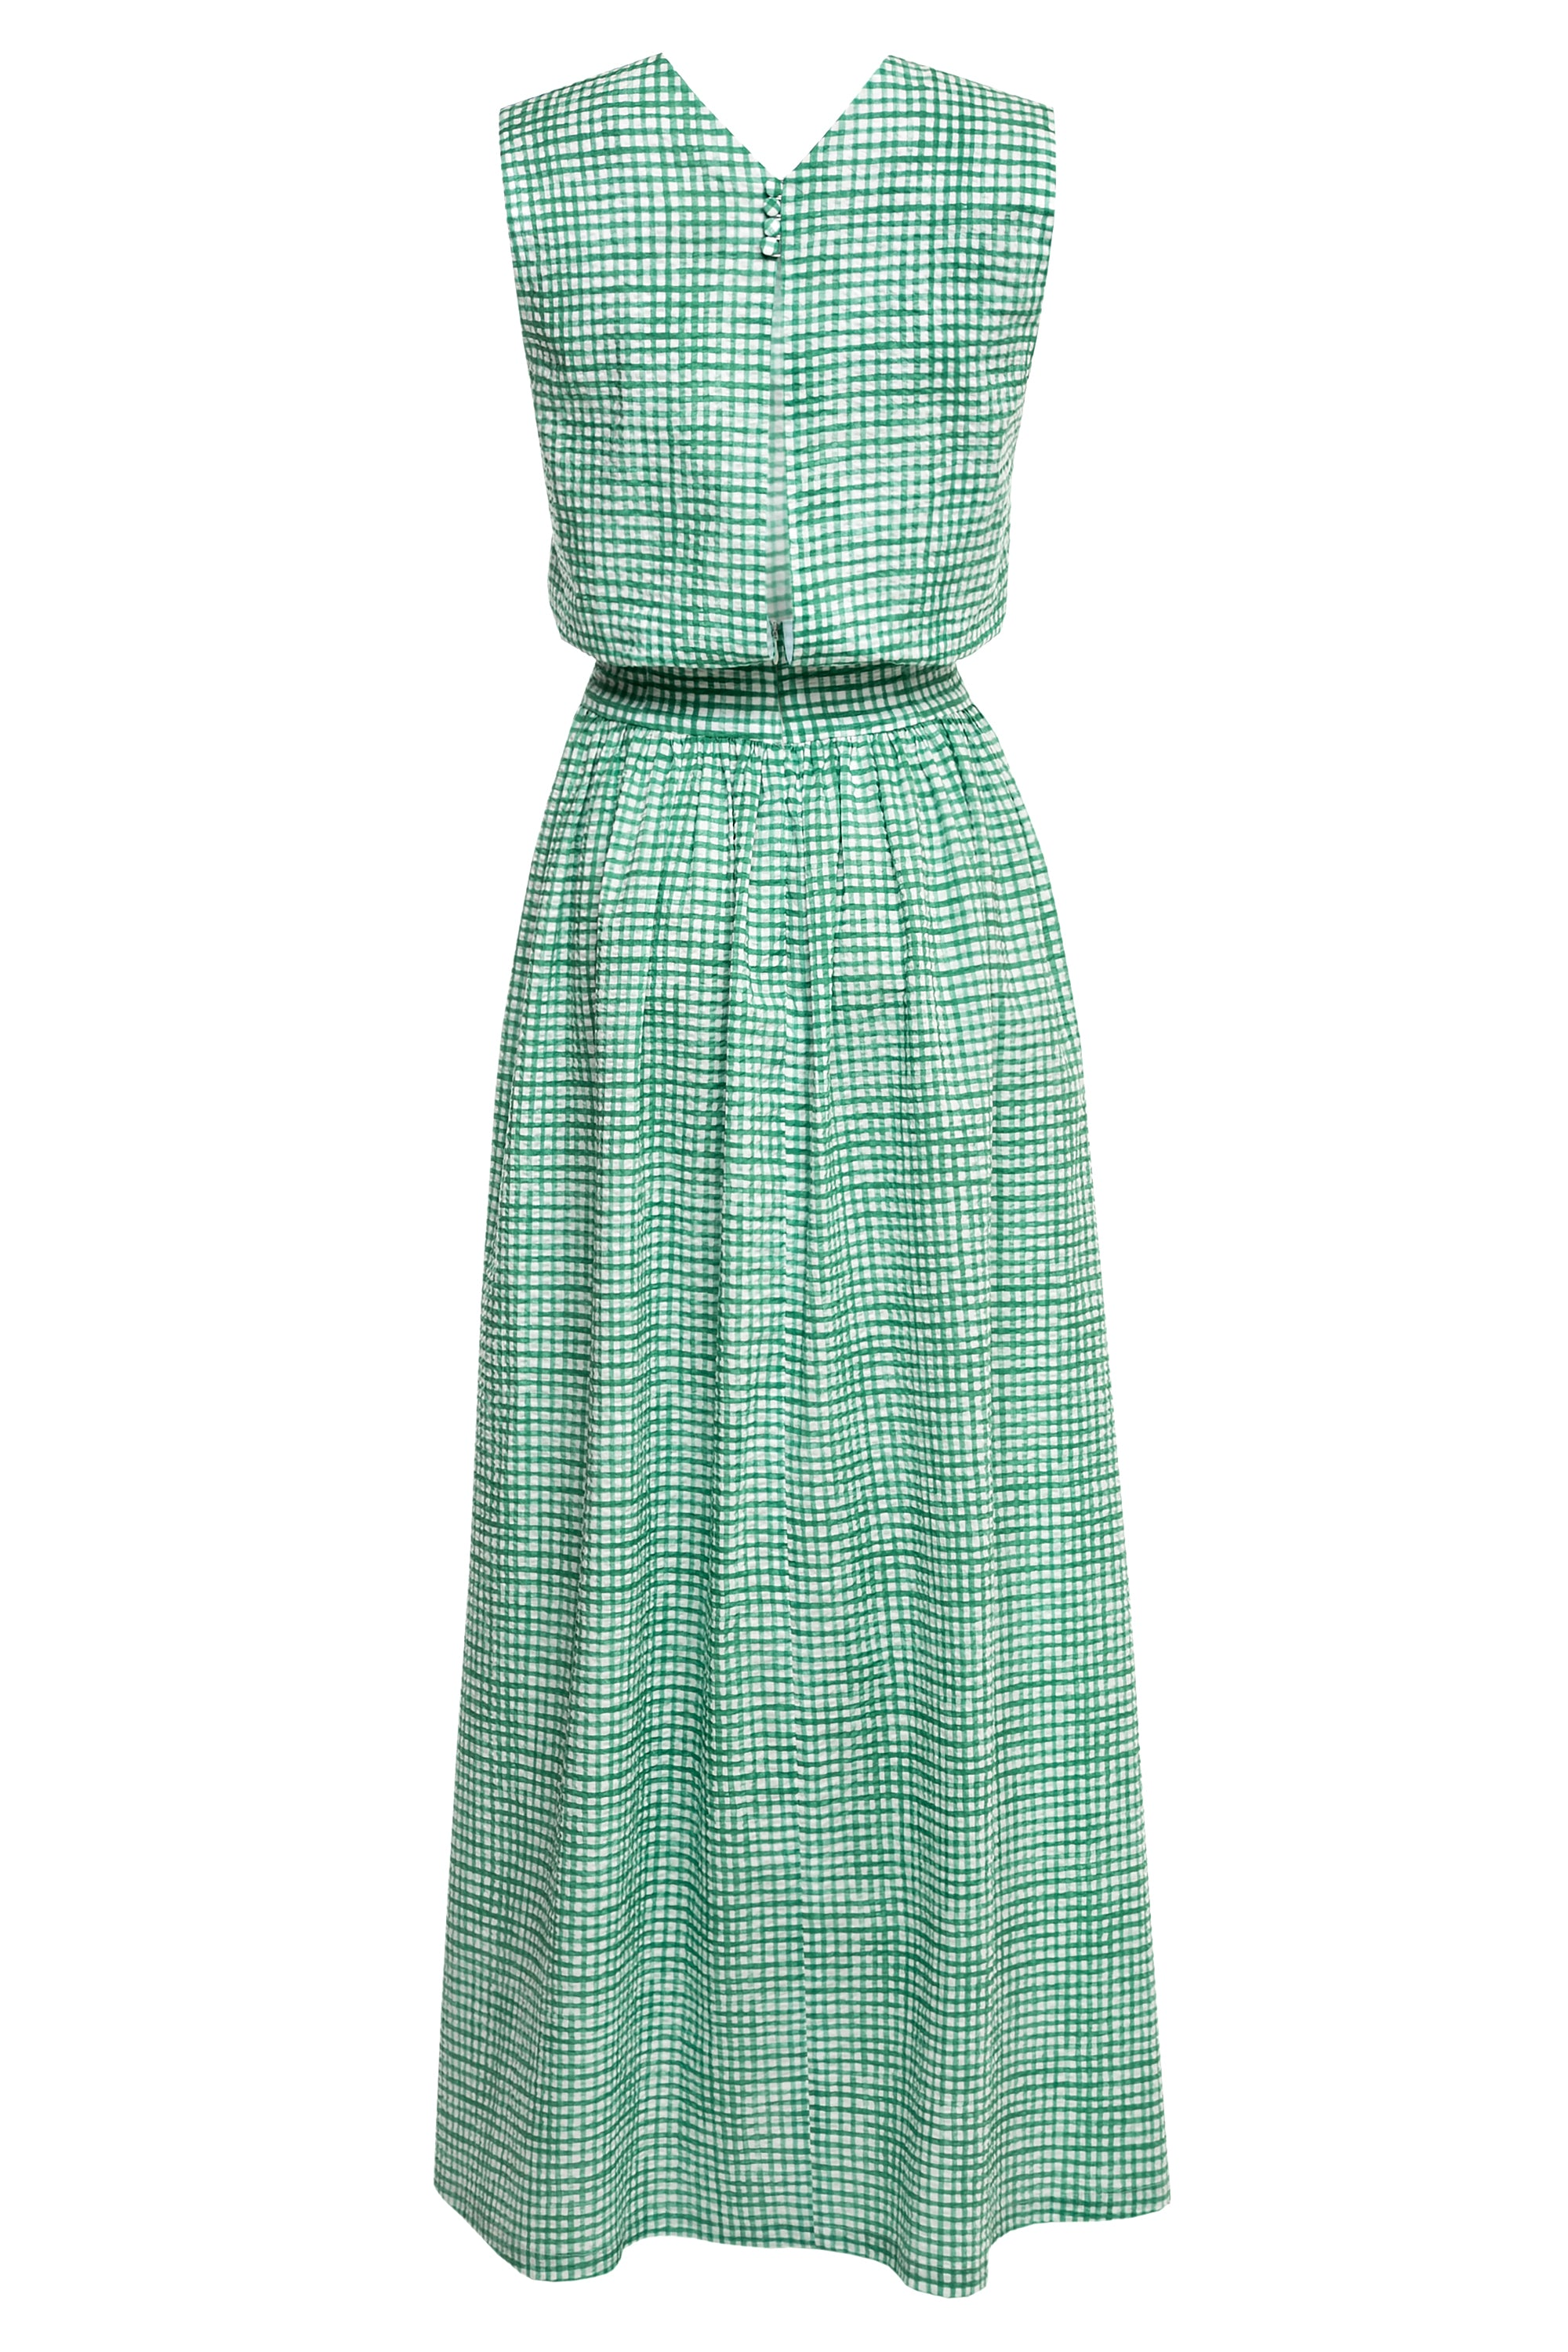 Agnes Cotton Dress with Button Fastening